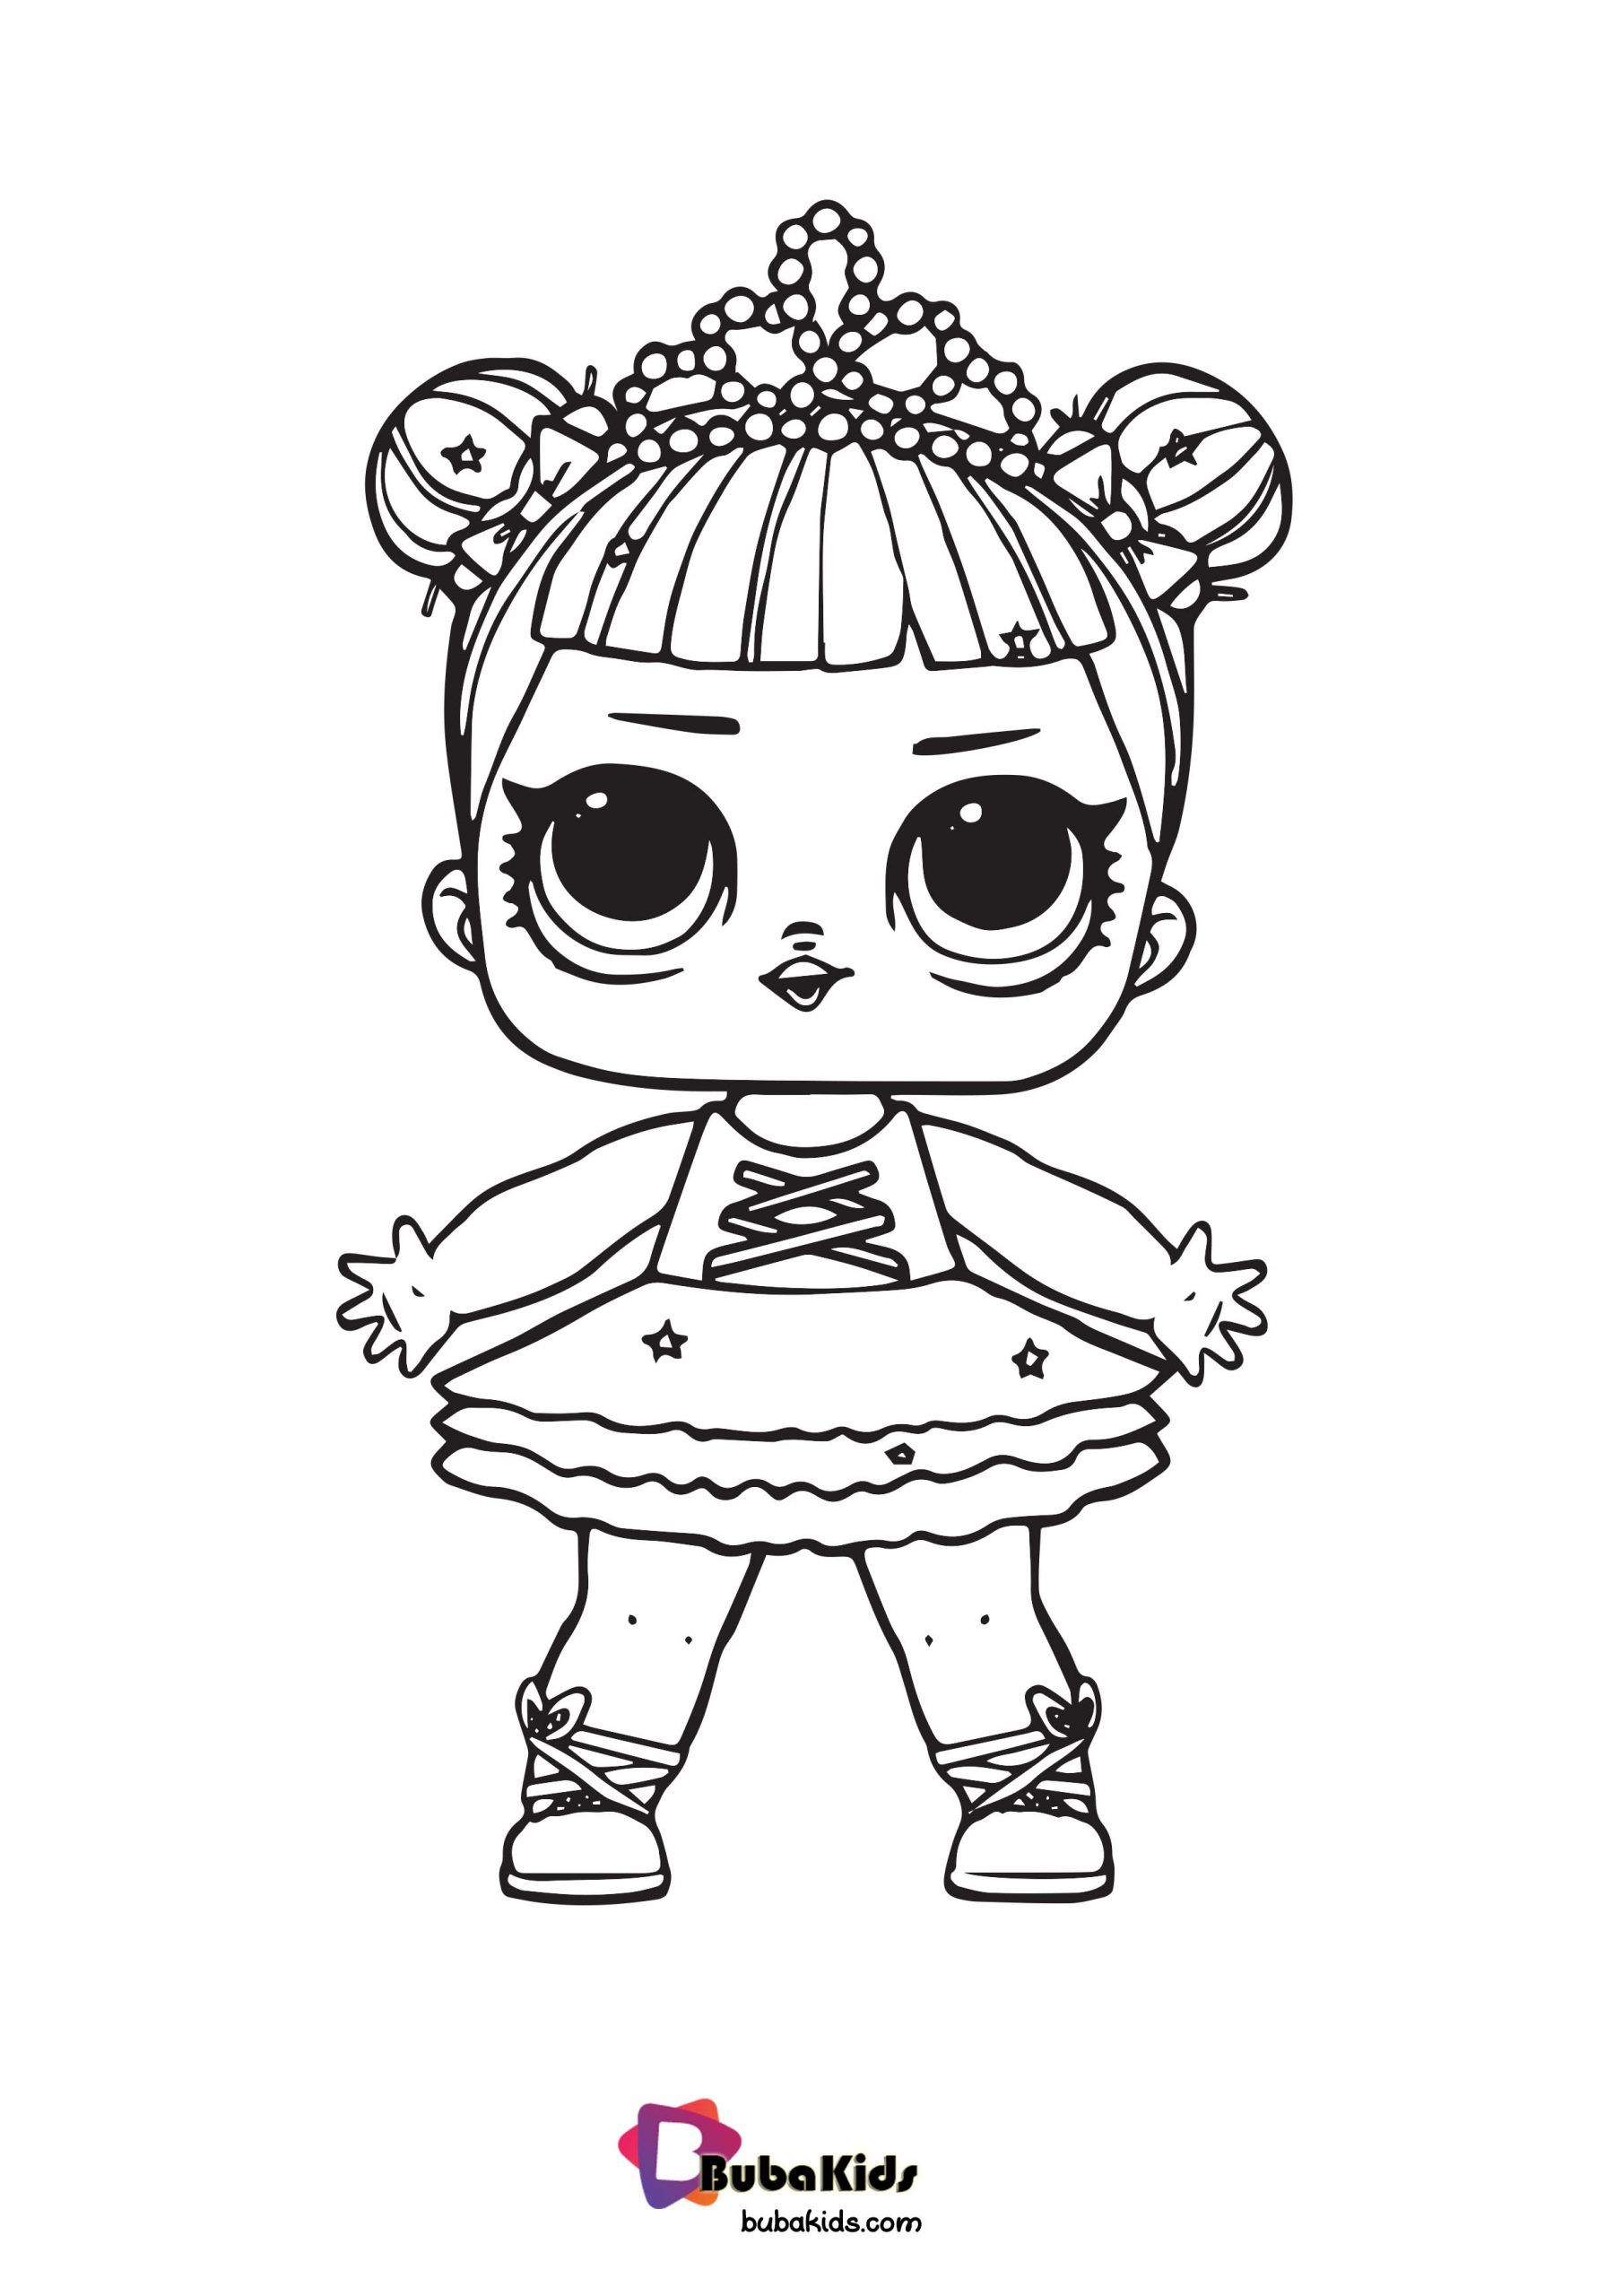 Lol Princess Doll Coloring Page Collection Of Cartoon Coloring Pages For Teenage Printable That You Can D Cartoon Coloring Pages Coloring Pages Princess Dolls